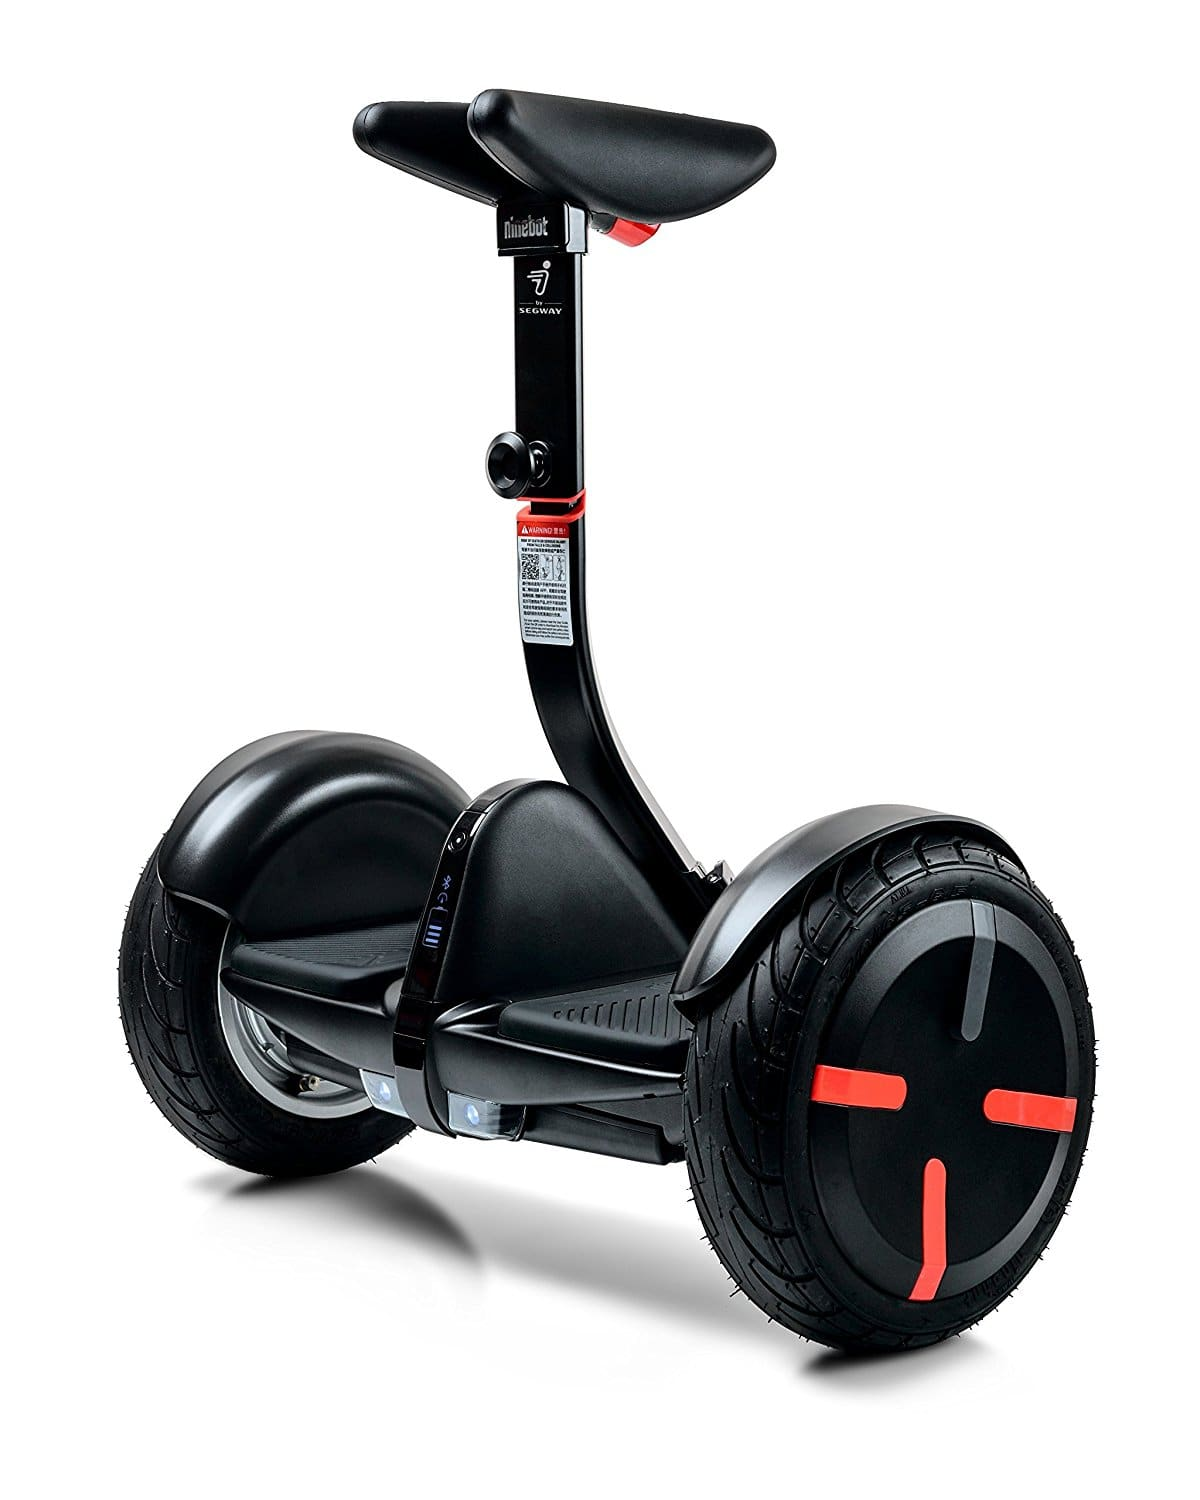 Segway Mini Pro $319.01 Open Box / $399 New at Sam's club (YMMV In-Store Only)